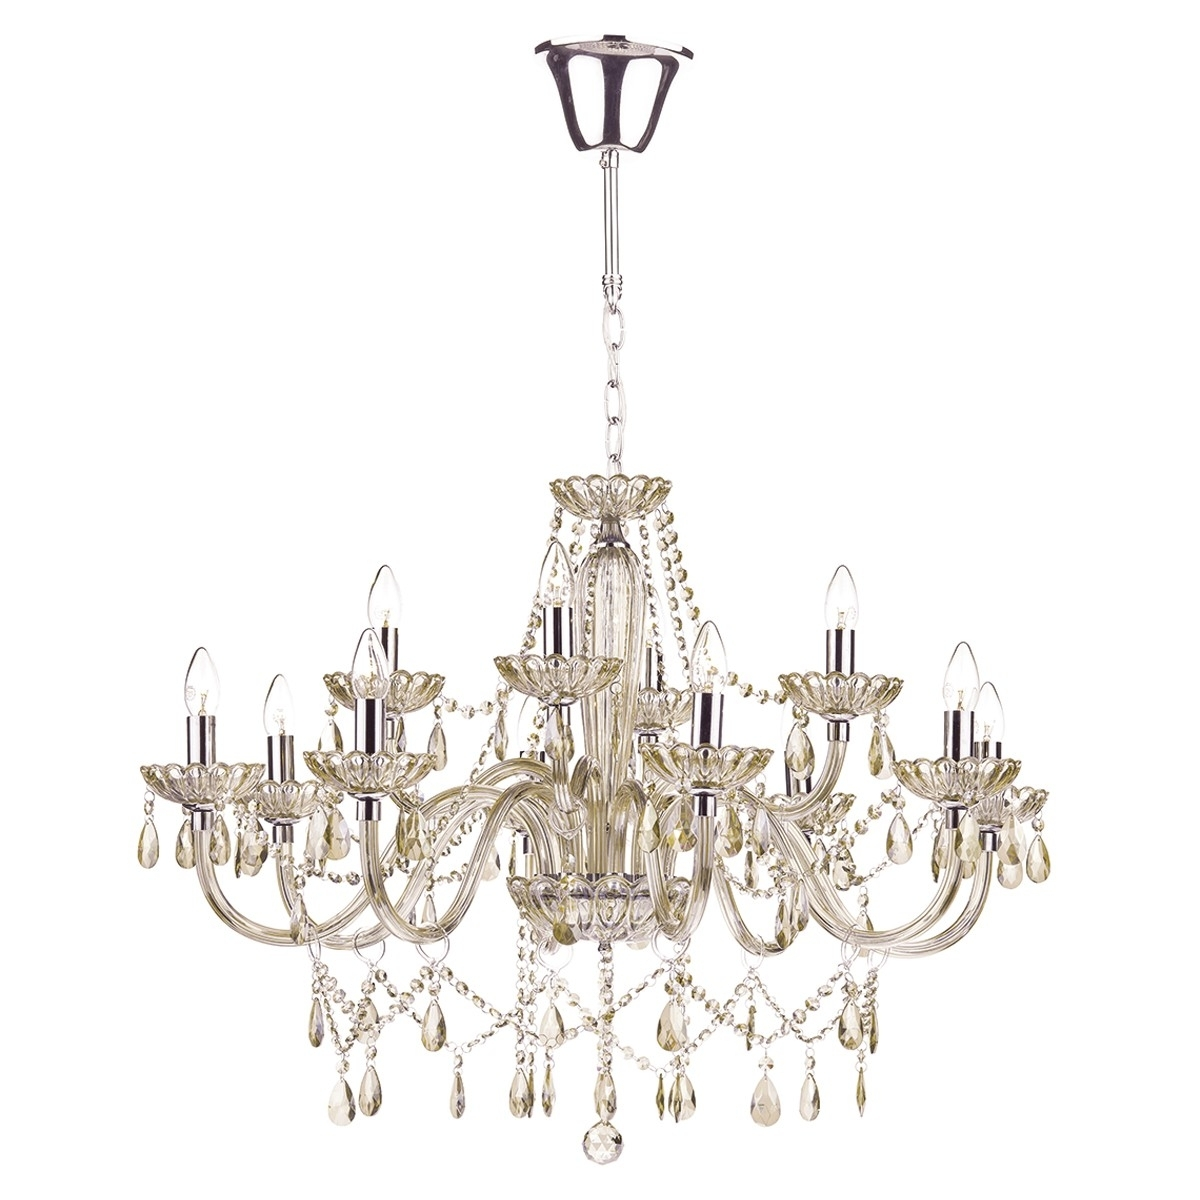 Favorite Light Fitting Chandeliers Throughout Chandeliers Design : Awesome Light Chandelier Capital Lighting (View 5 of 20)